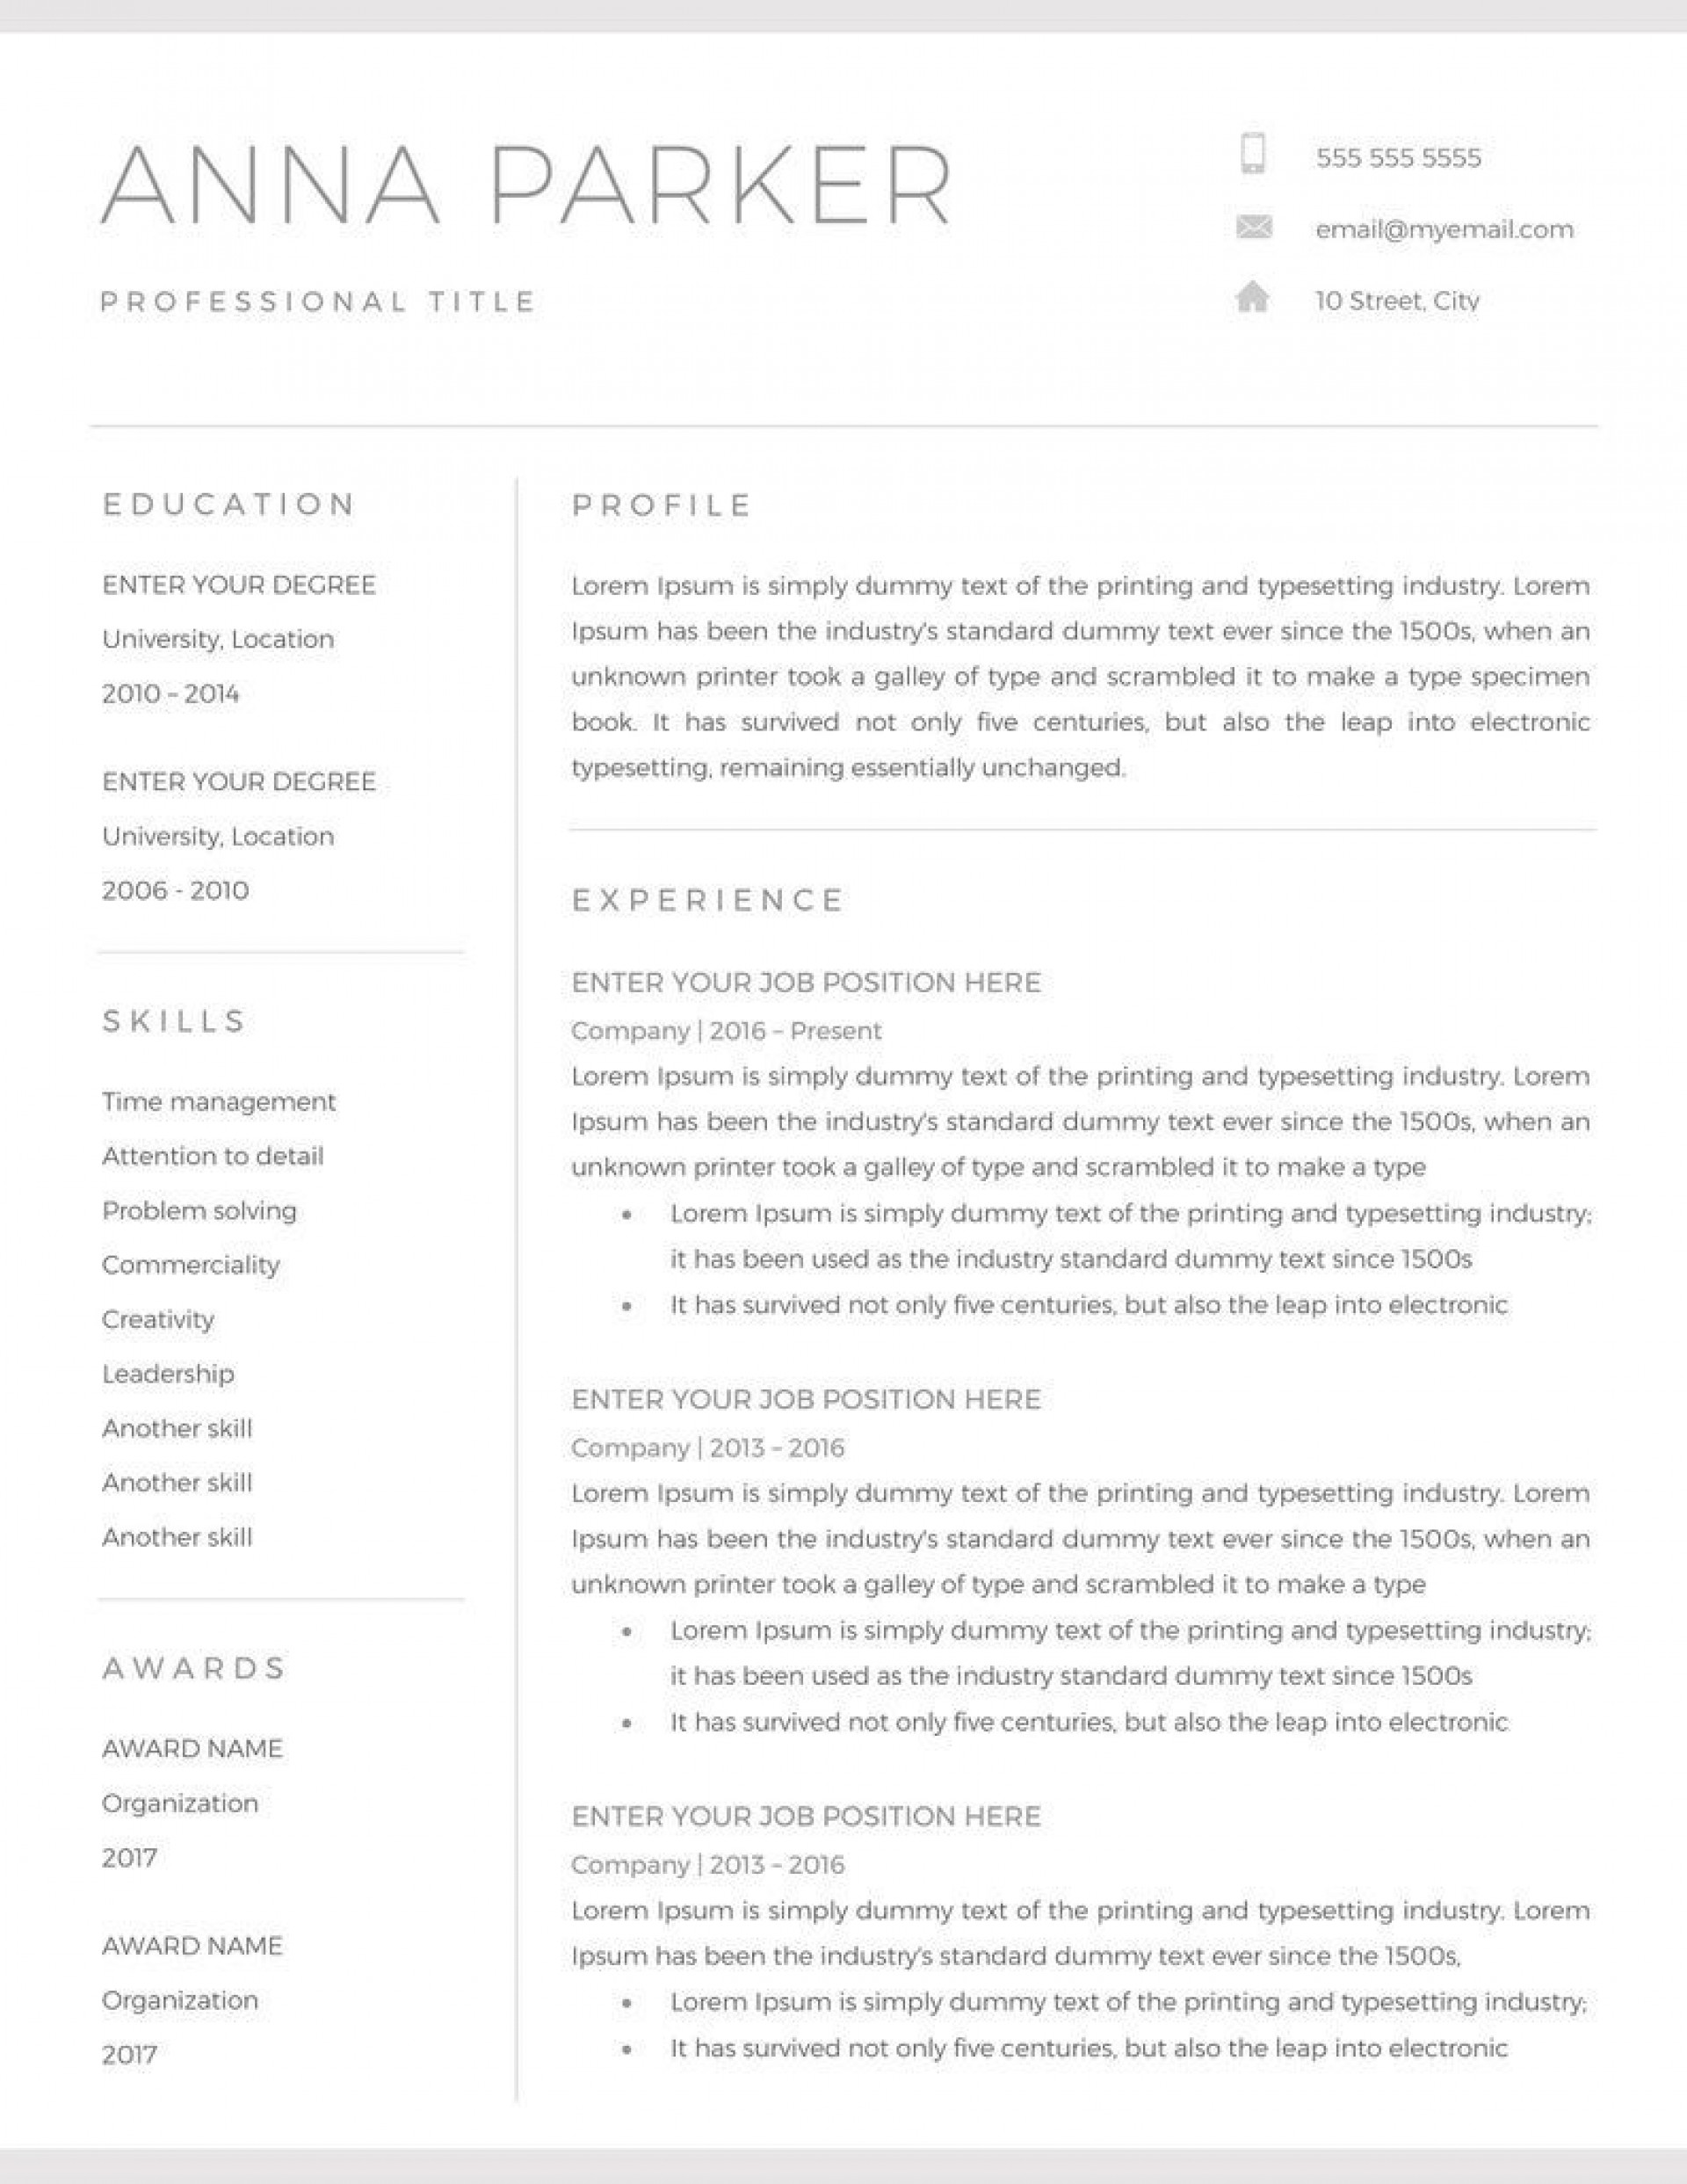 001 Astounding Resume Microsoft Word Template High Resolution  Cv/resume Design Tutorial With Federal Download1920